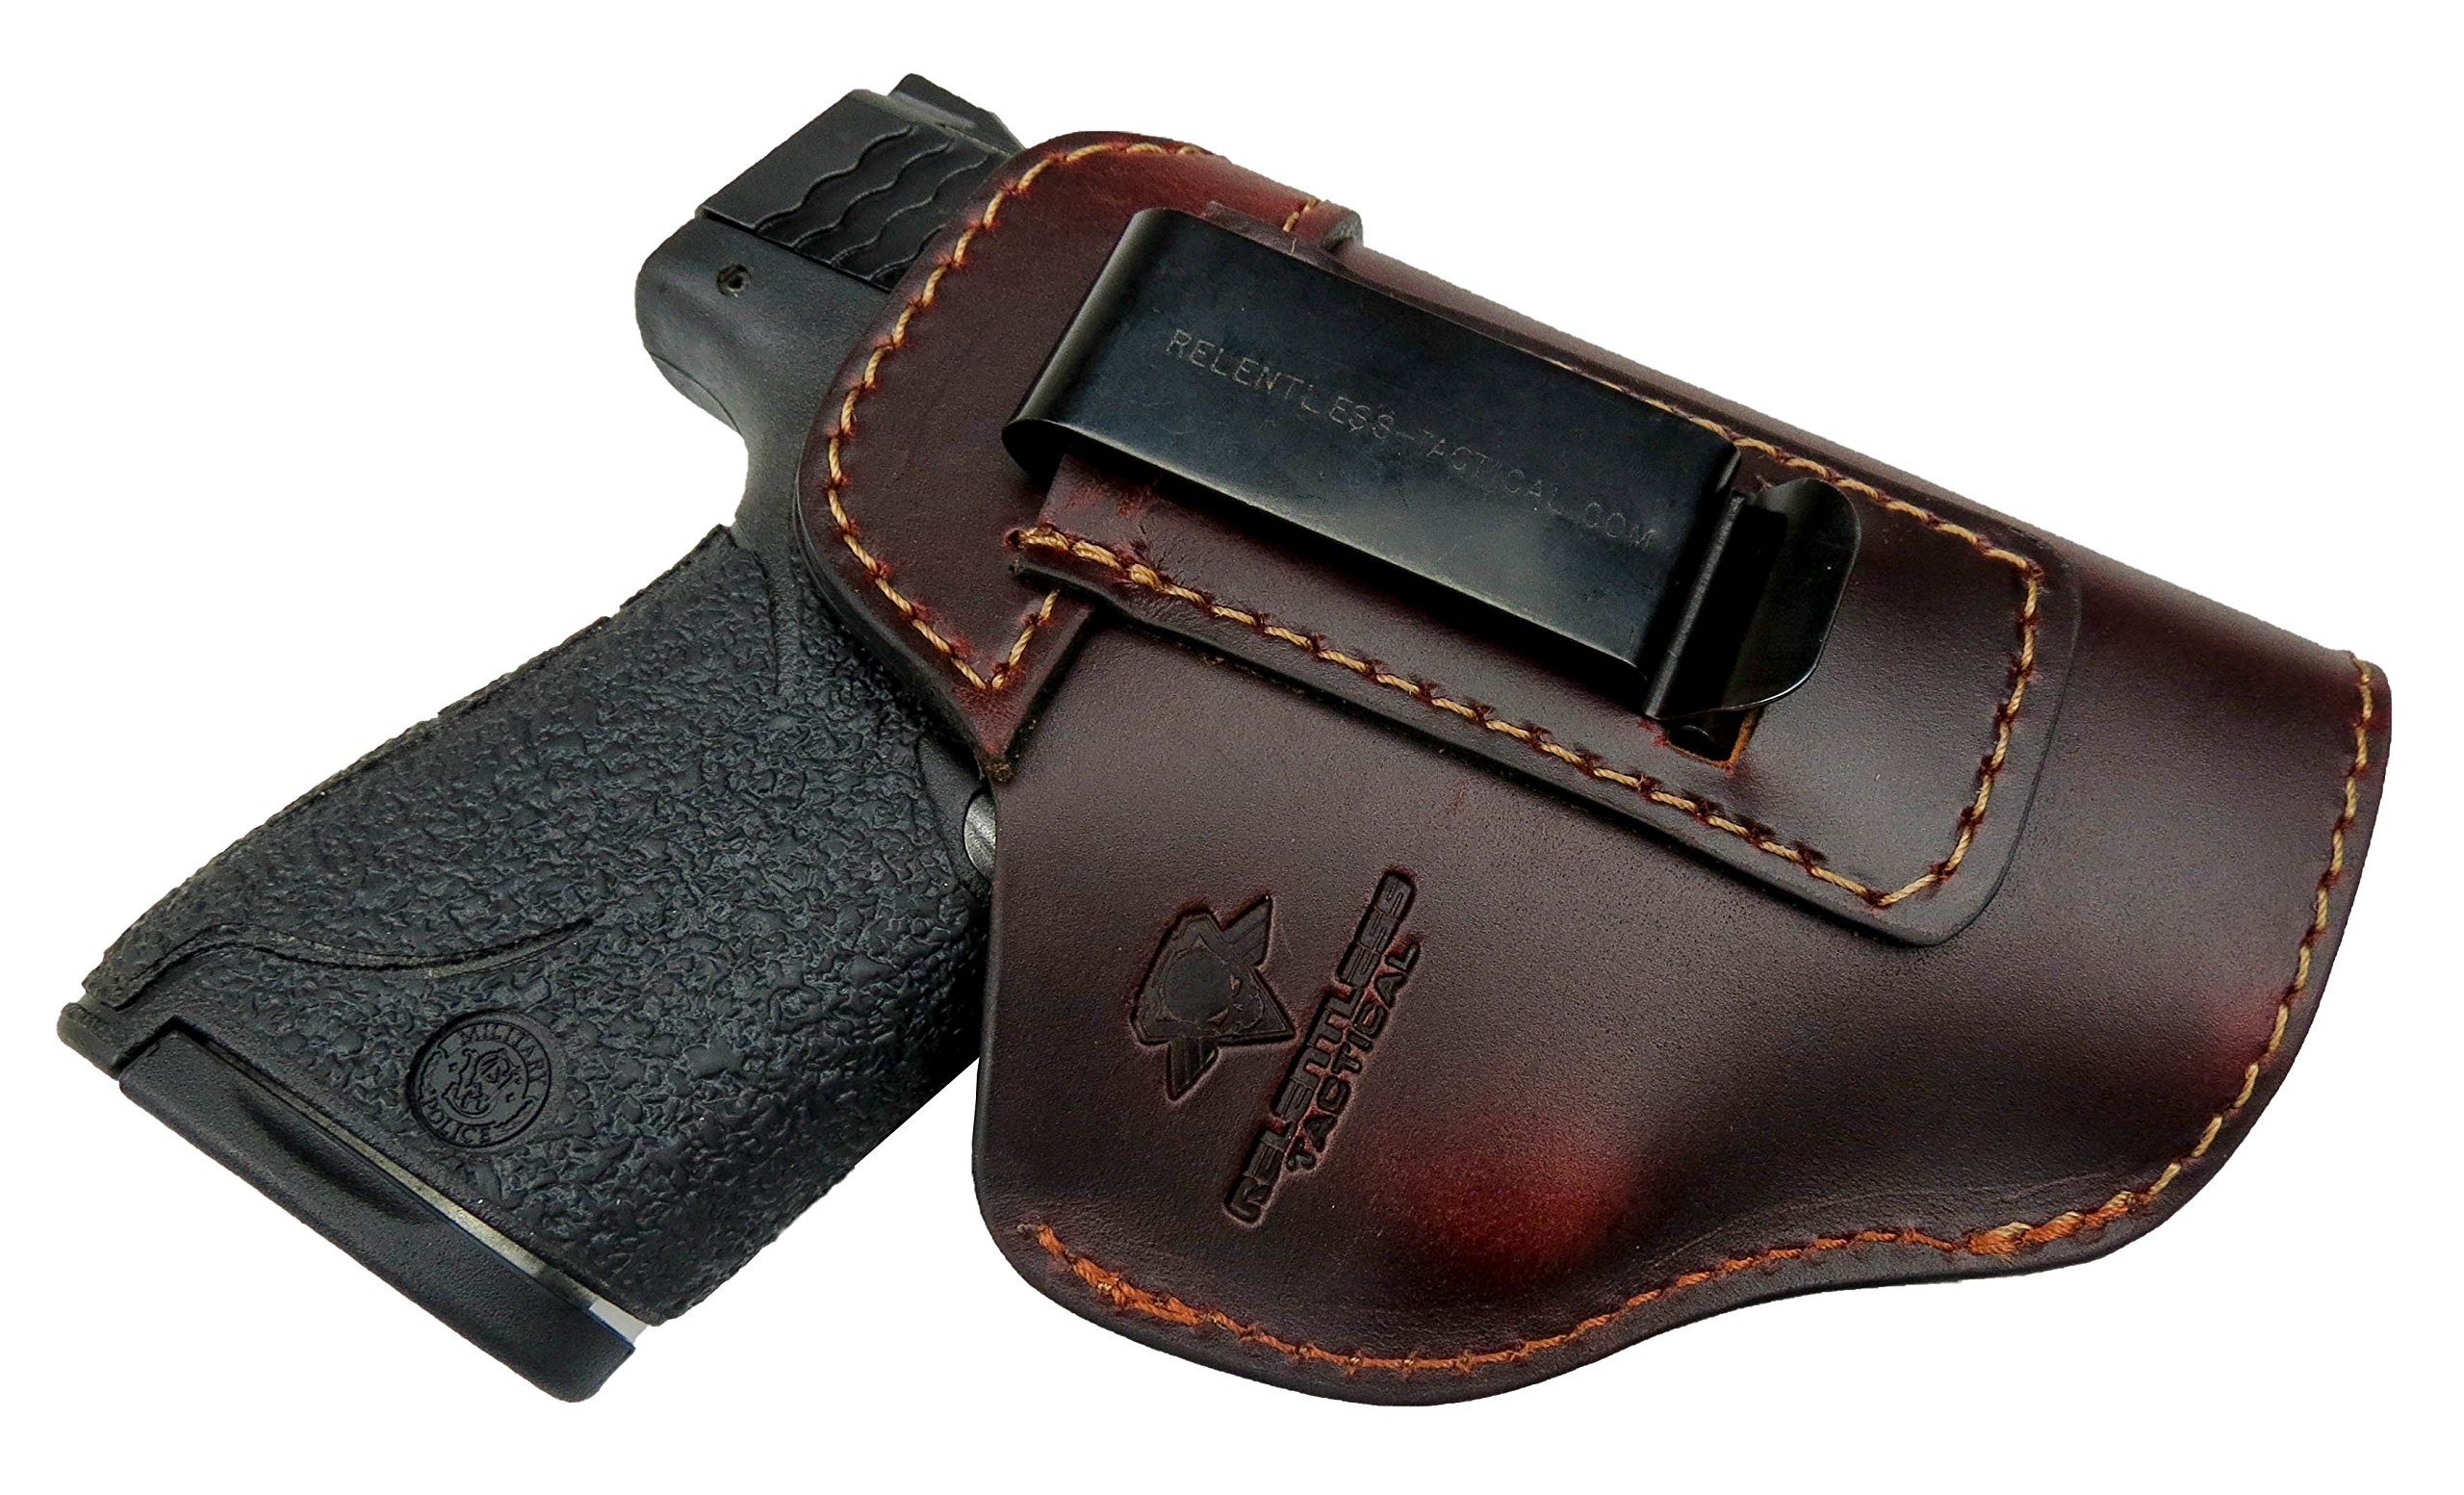 Relentless Tactical The Defender Leather IWB Holster - Made in USA - For S&W M&P Shield - GLOCK 17 19 22 23 32 33/Springfield XD & XDS/Plus All Similar Sized Handguns – Brown – Right Handed by Relentless Tactical (Image #1)